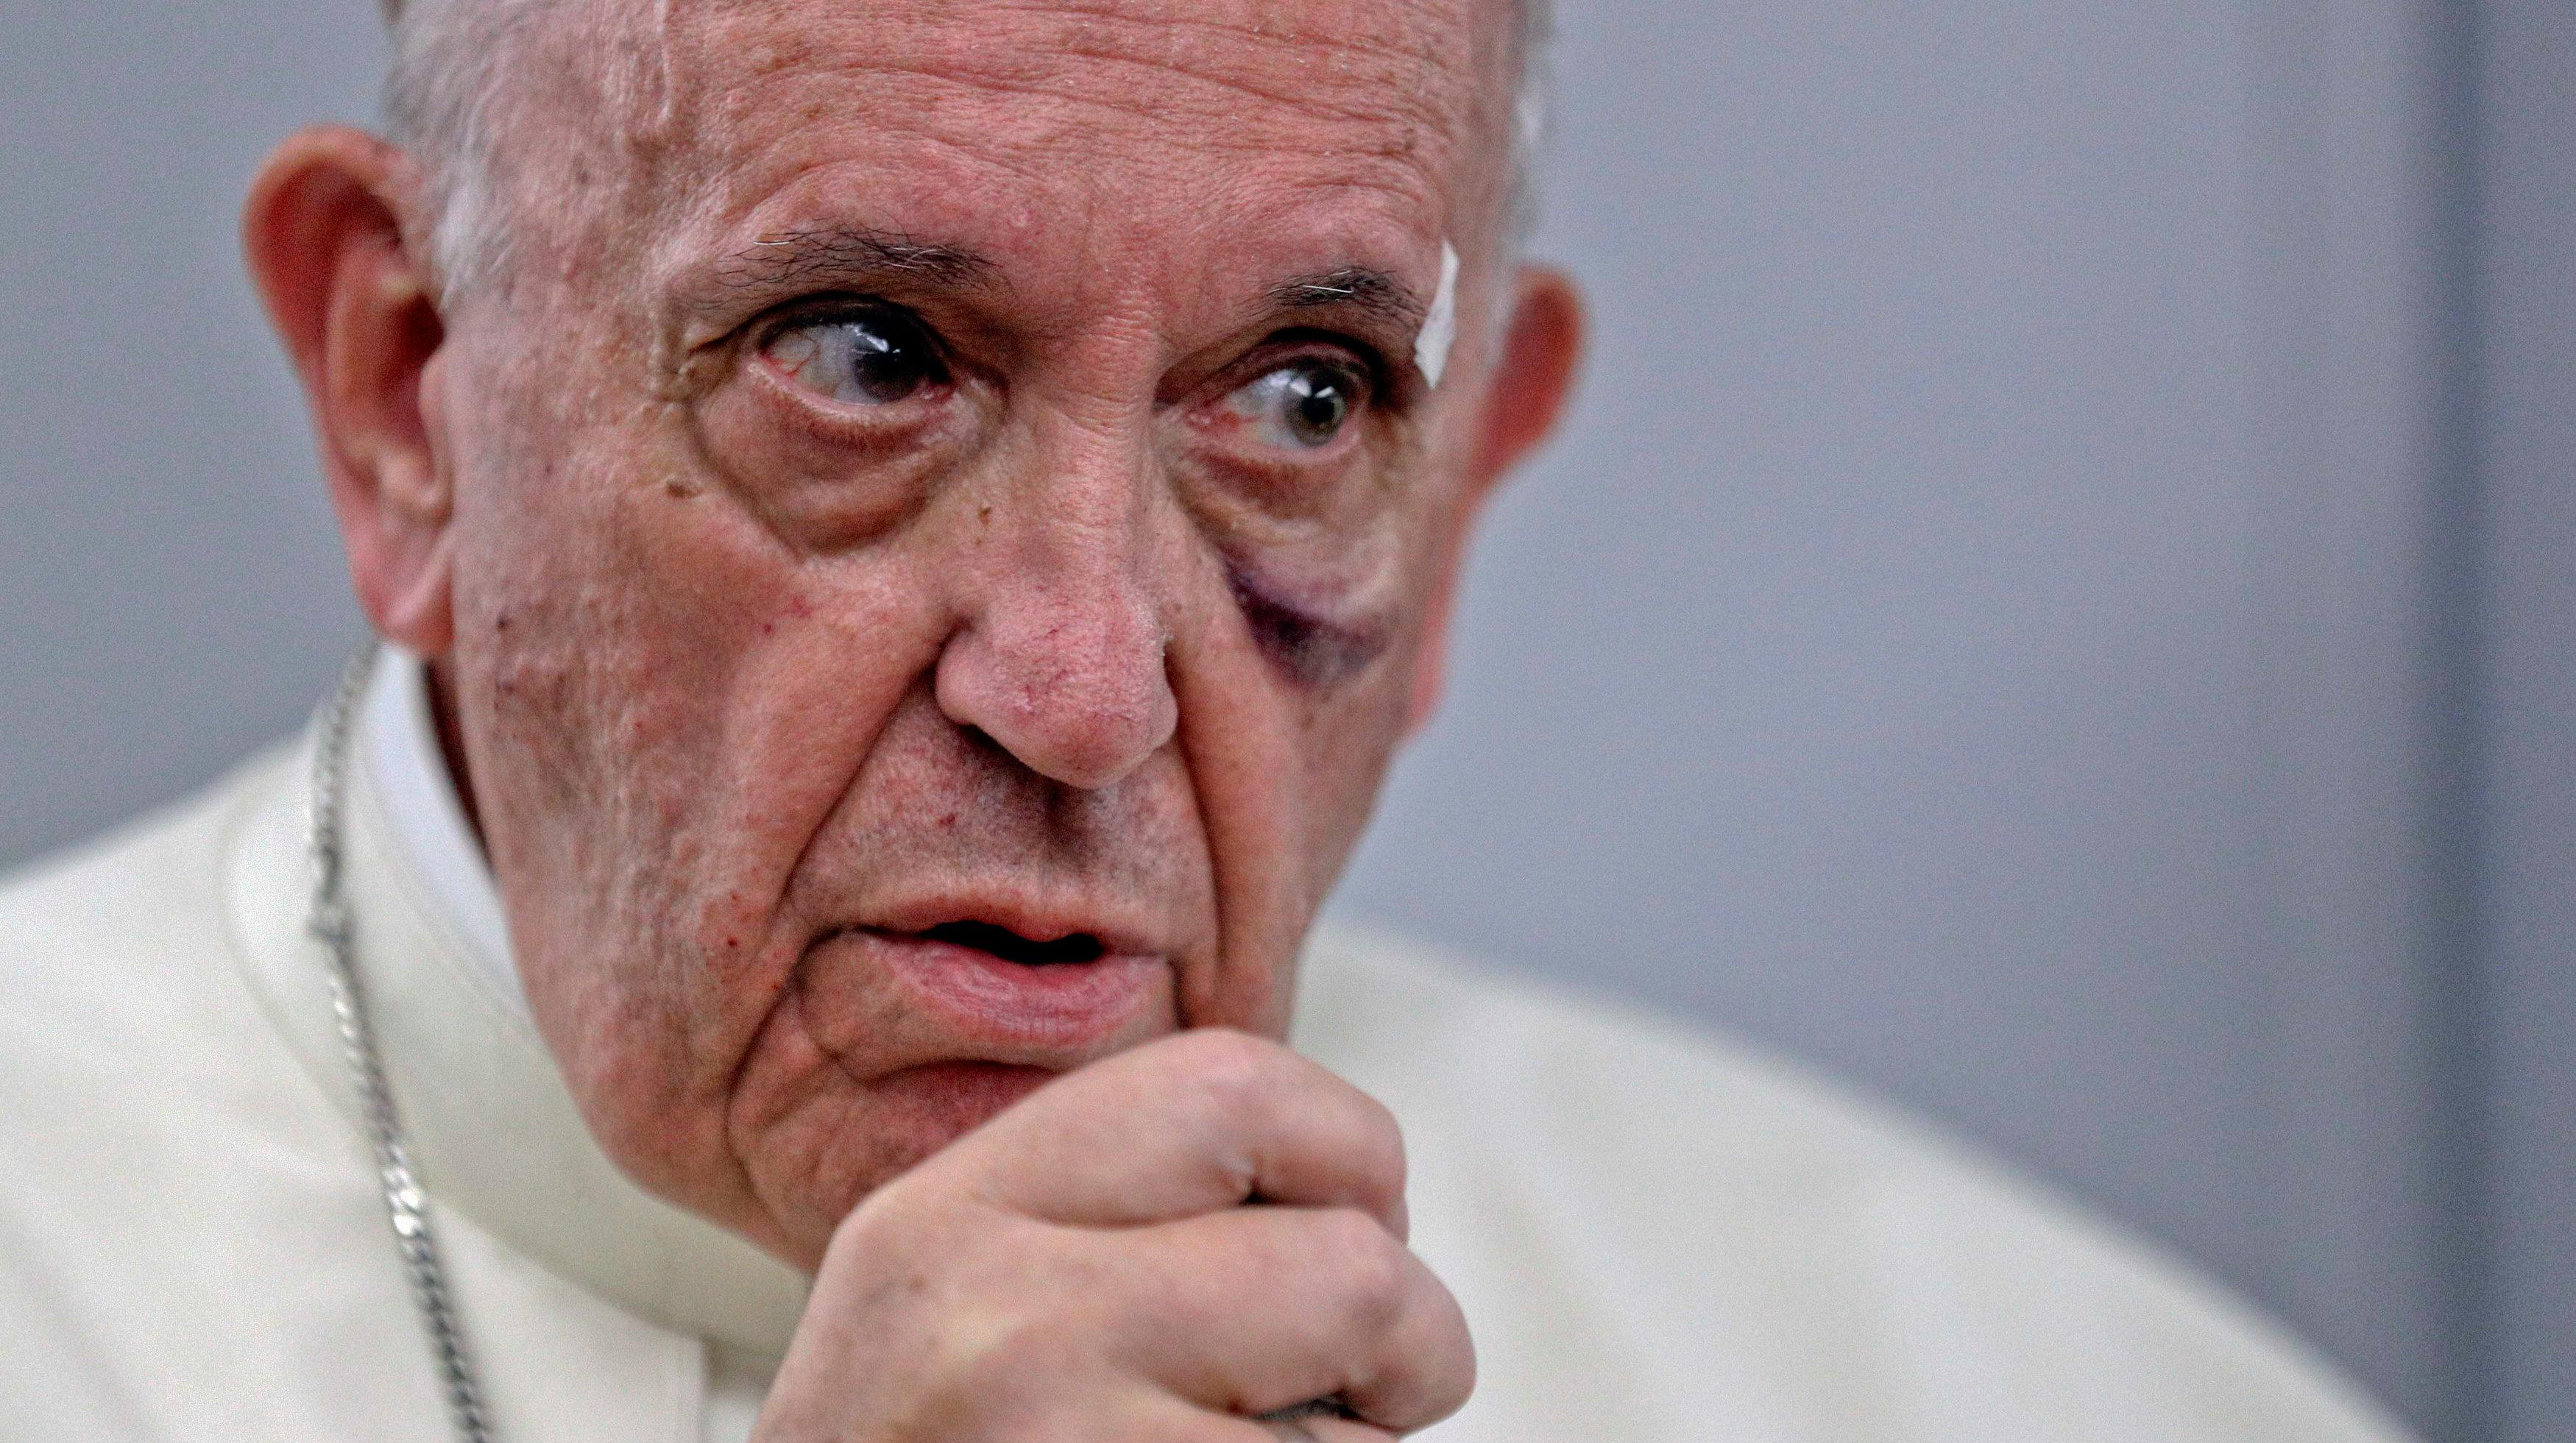 Pope Francis On Climate Change Denial: 'Man Is Stupid'